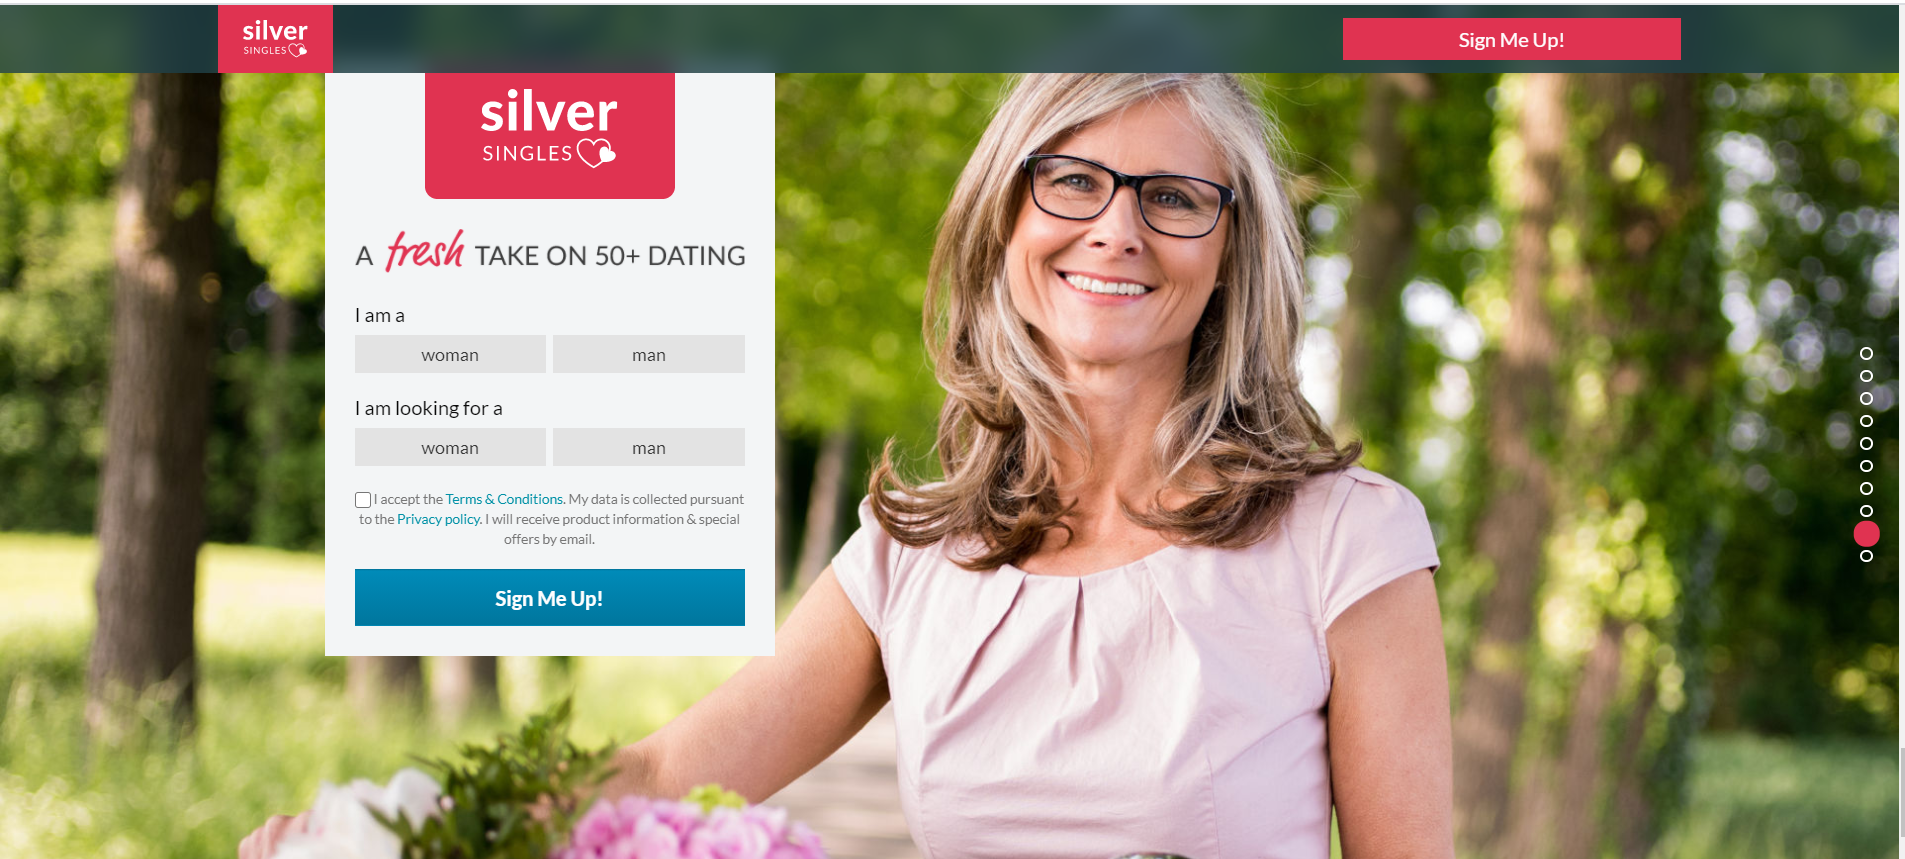 2021 02 28 e1614521450413 - Best Senior Dating Sites: Love Knows No Age